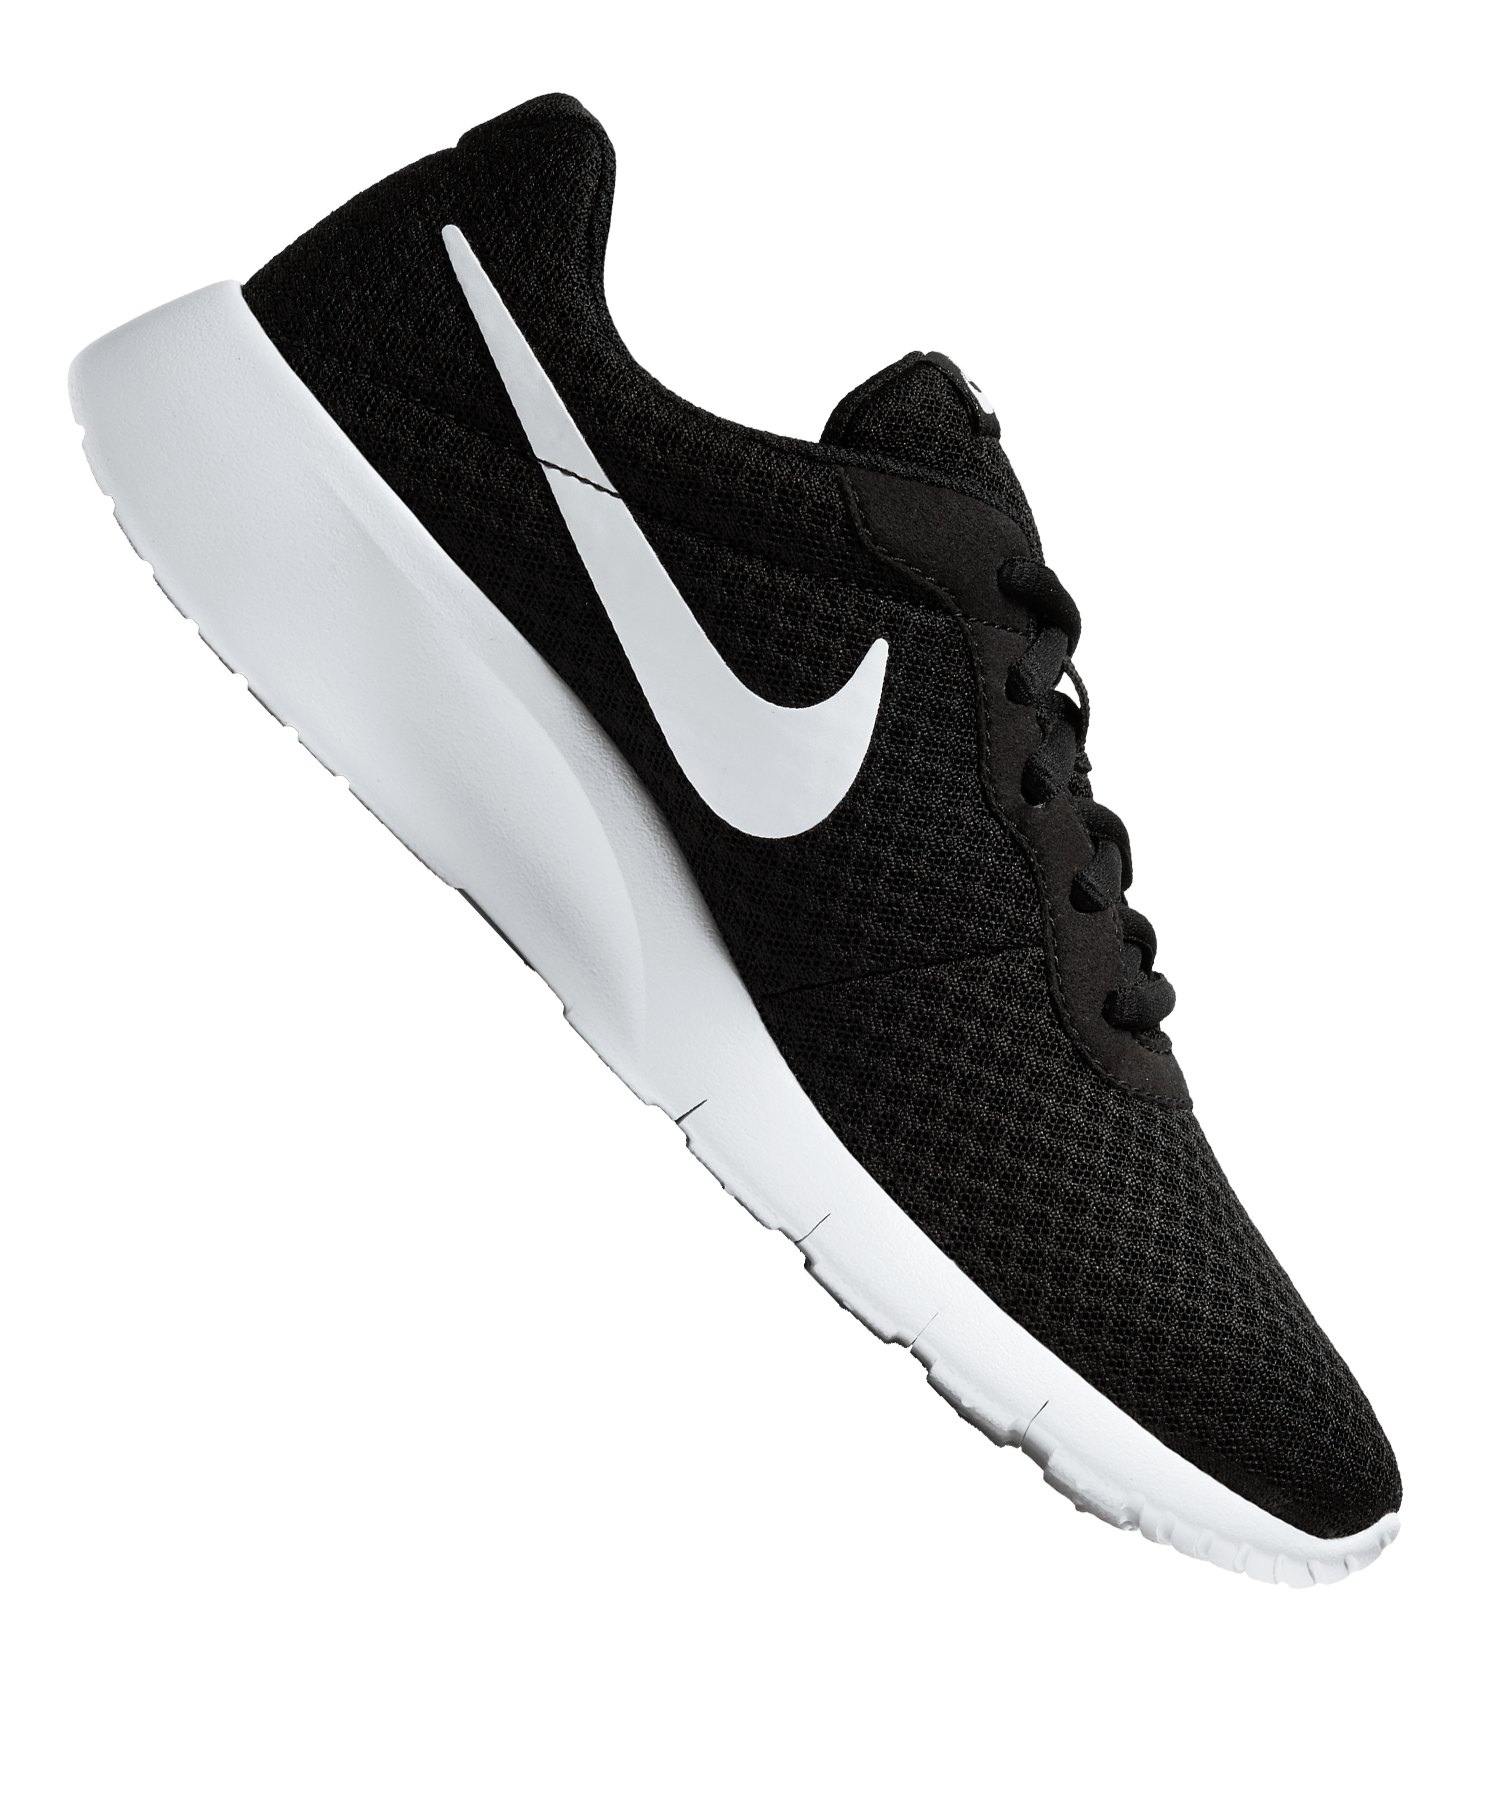 official store coupon code on feet images of Nike